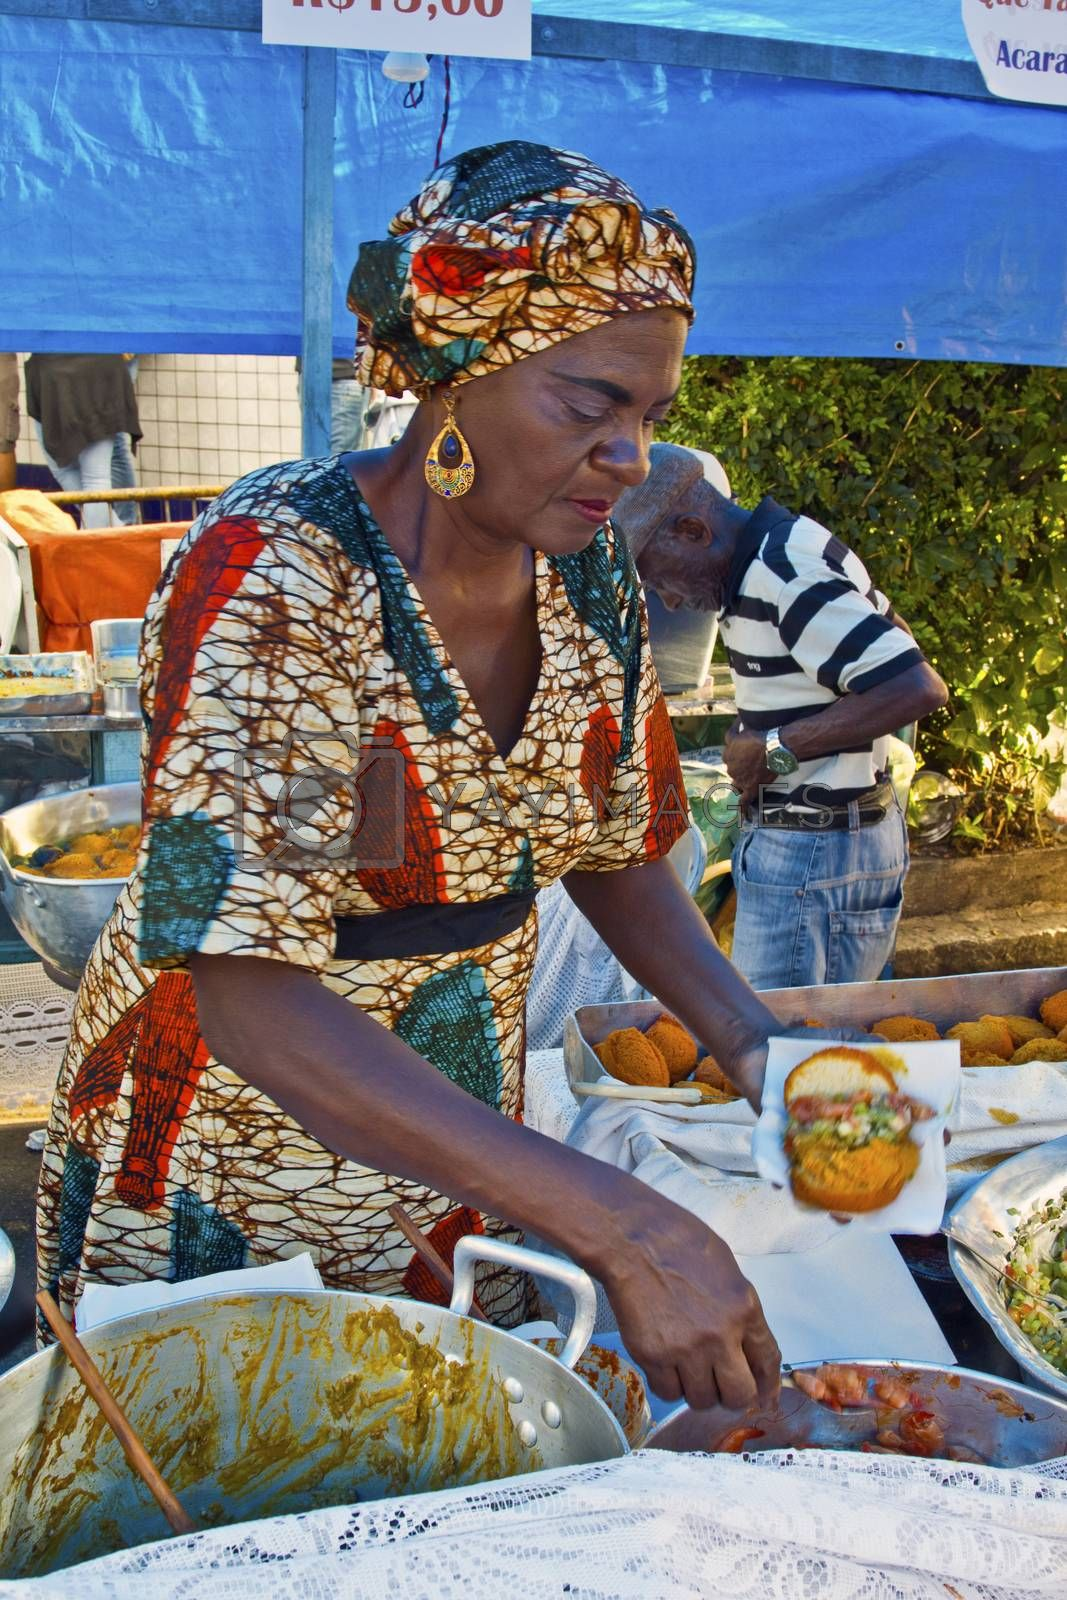 SAO PAULO, BRAZIL - MAY 17, 2015: An unidentified woman preparing typical brazilian food in a stand at a street fair market in Sao Paulo.